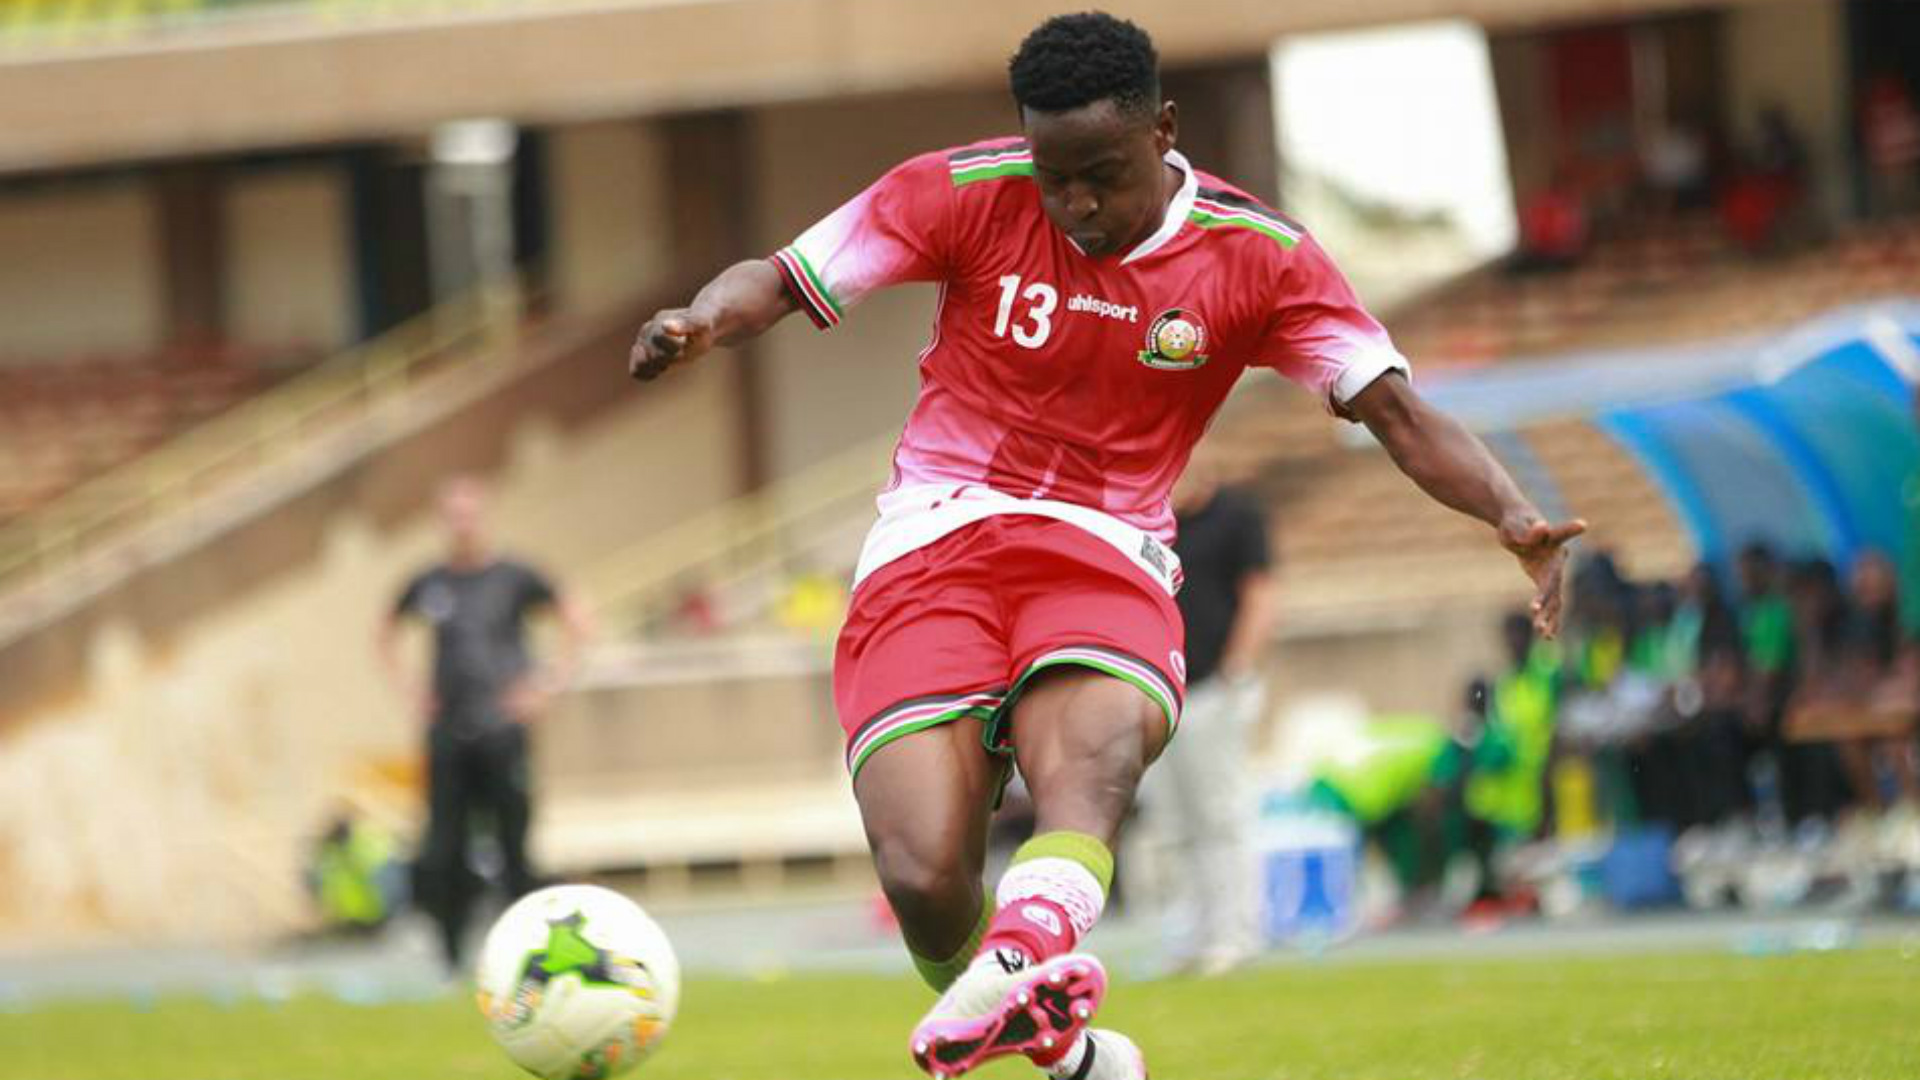 Afcon: Harambee Stars have respect for Algeria but we don't fear them, says Eric Ouma